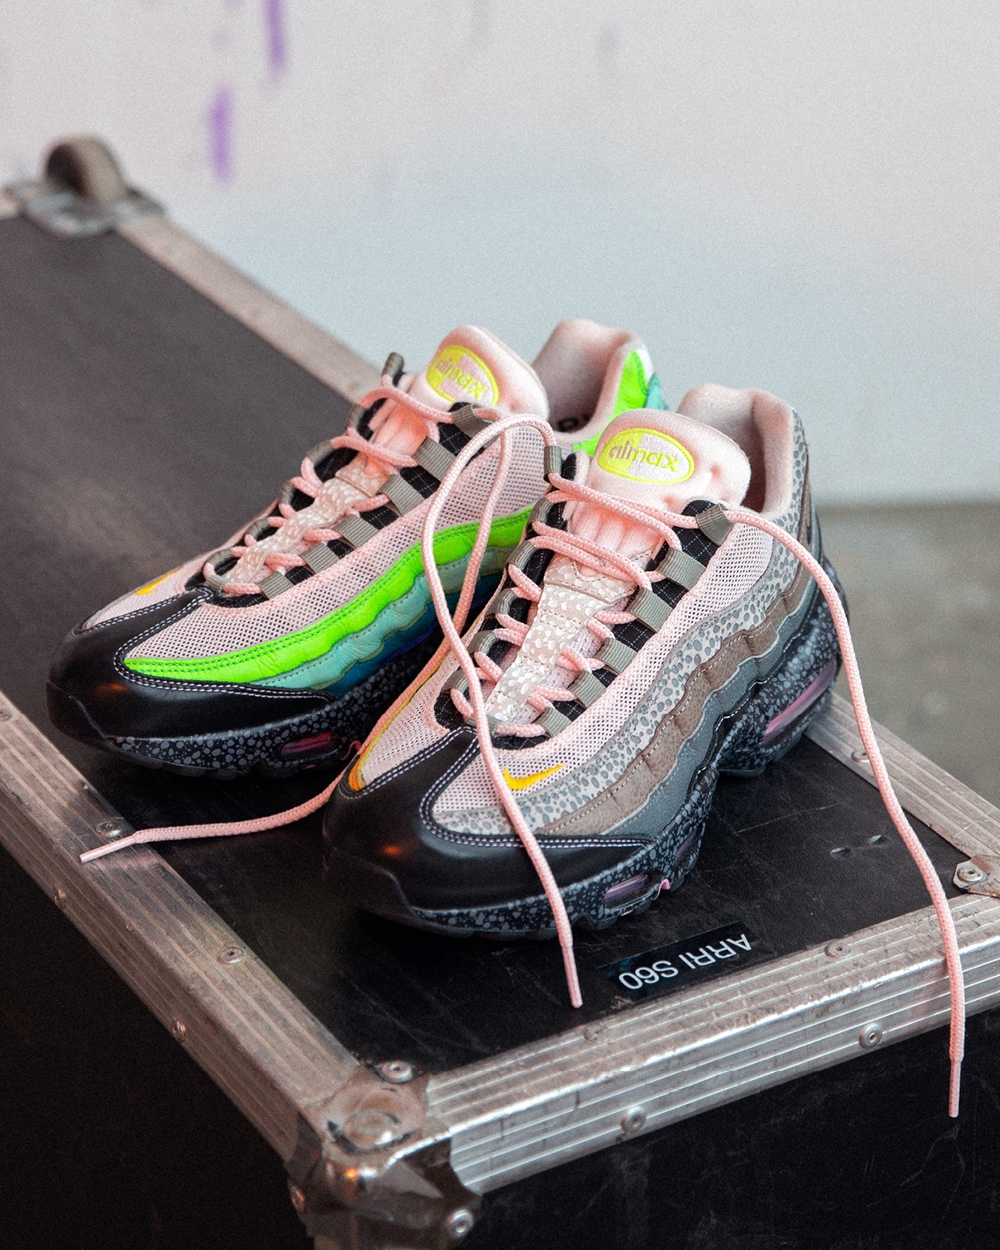 Nike Air Max 95 '20 for 20' size? Exclusive